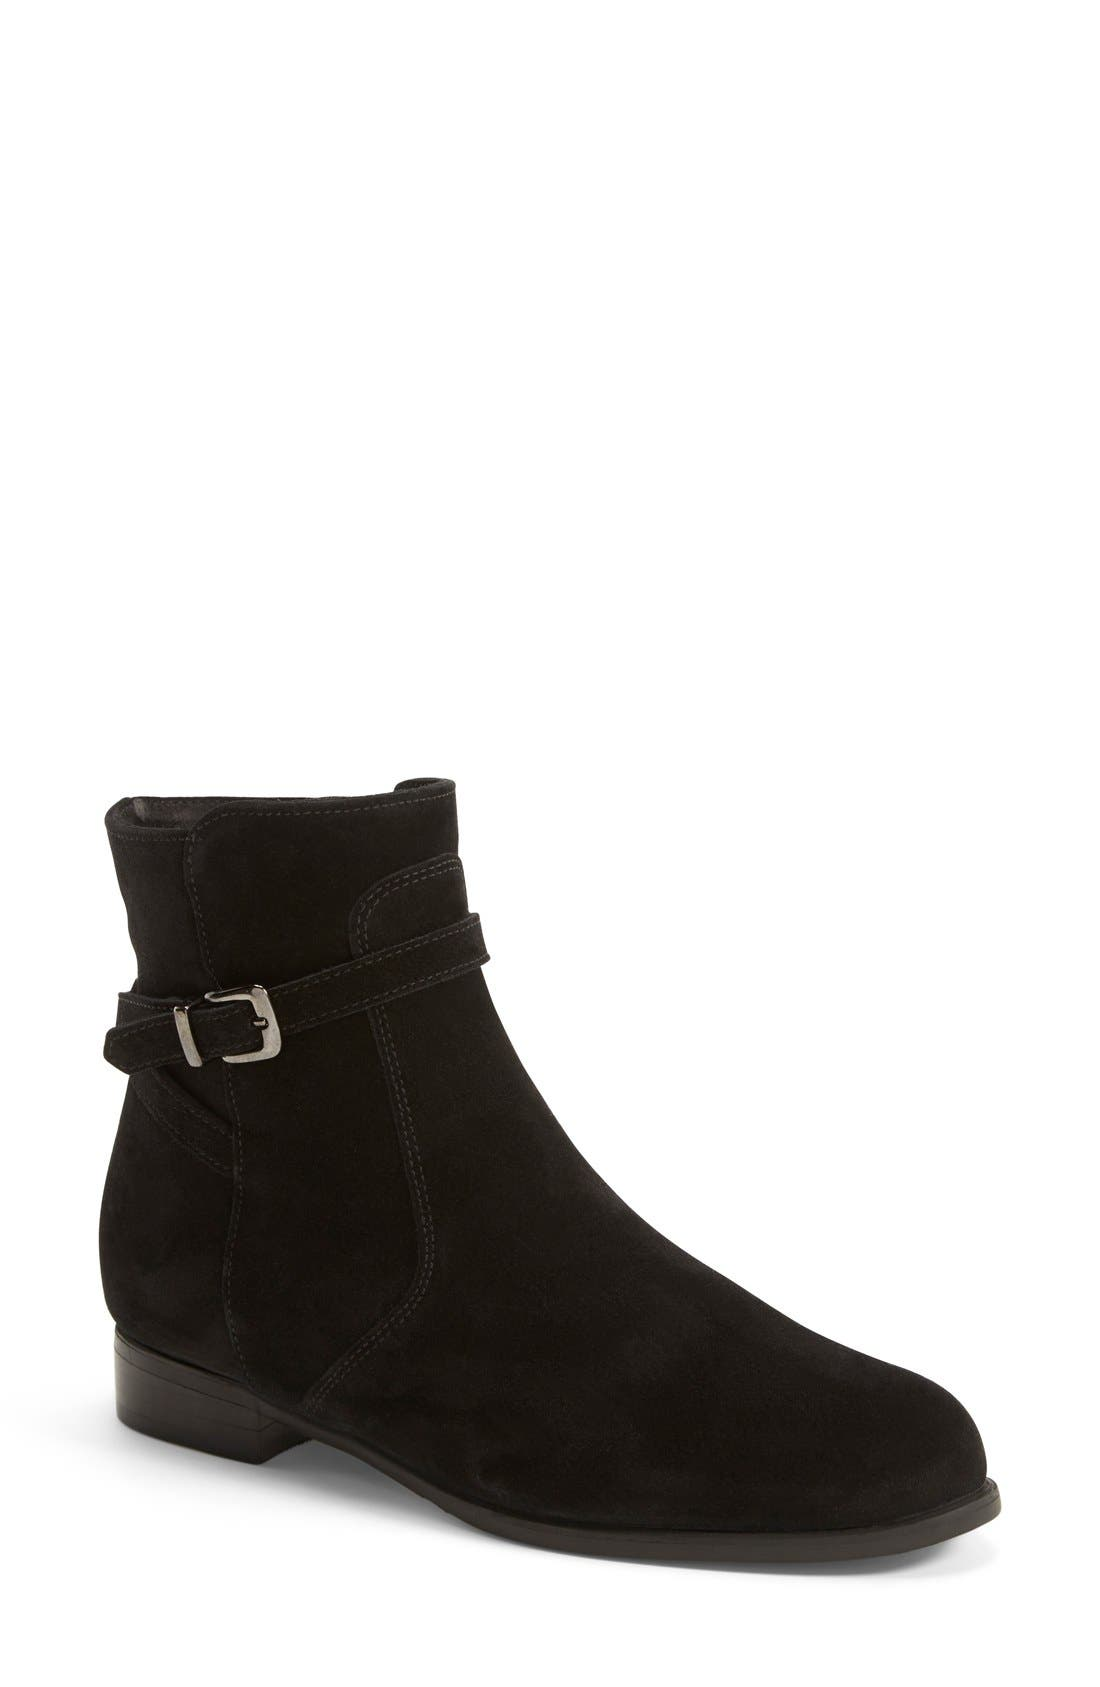 LA CANADIENNE 'Scarlet' Waterproof Bootie